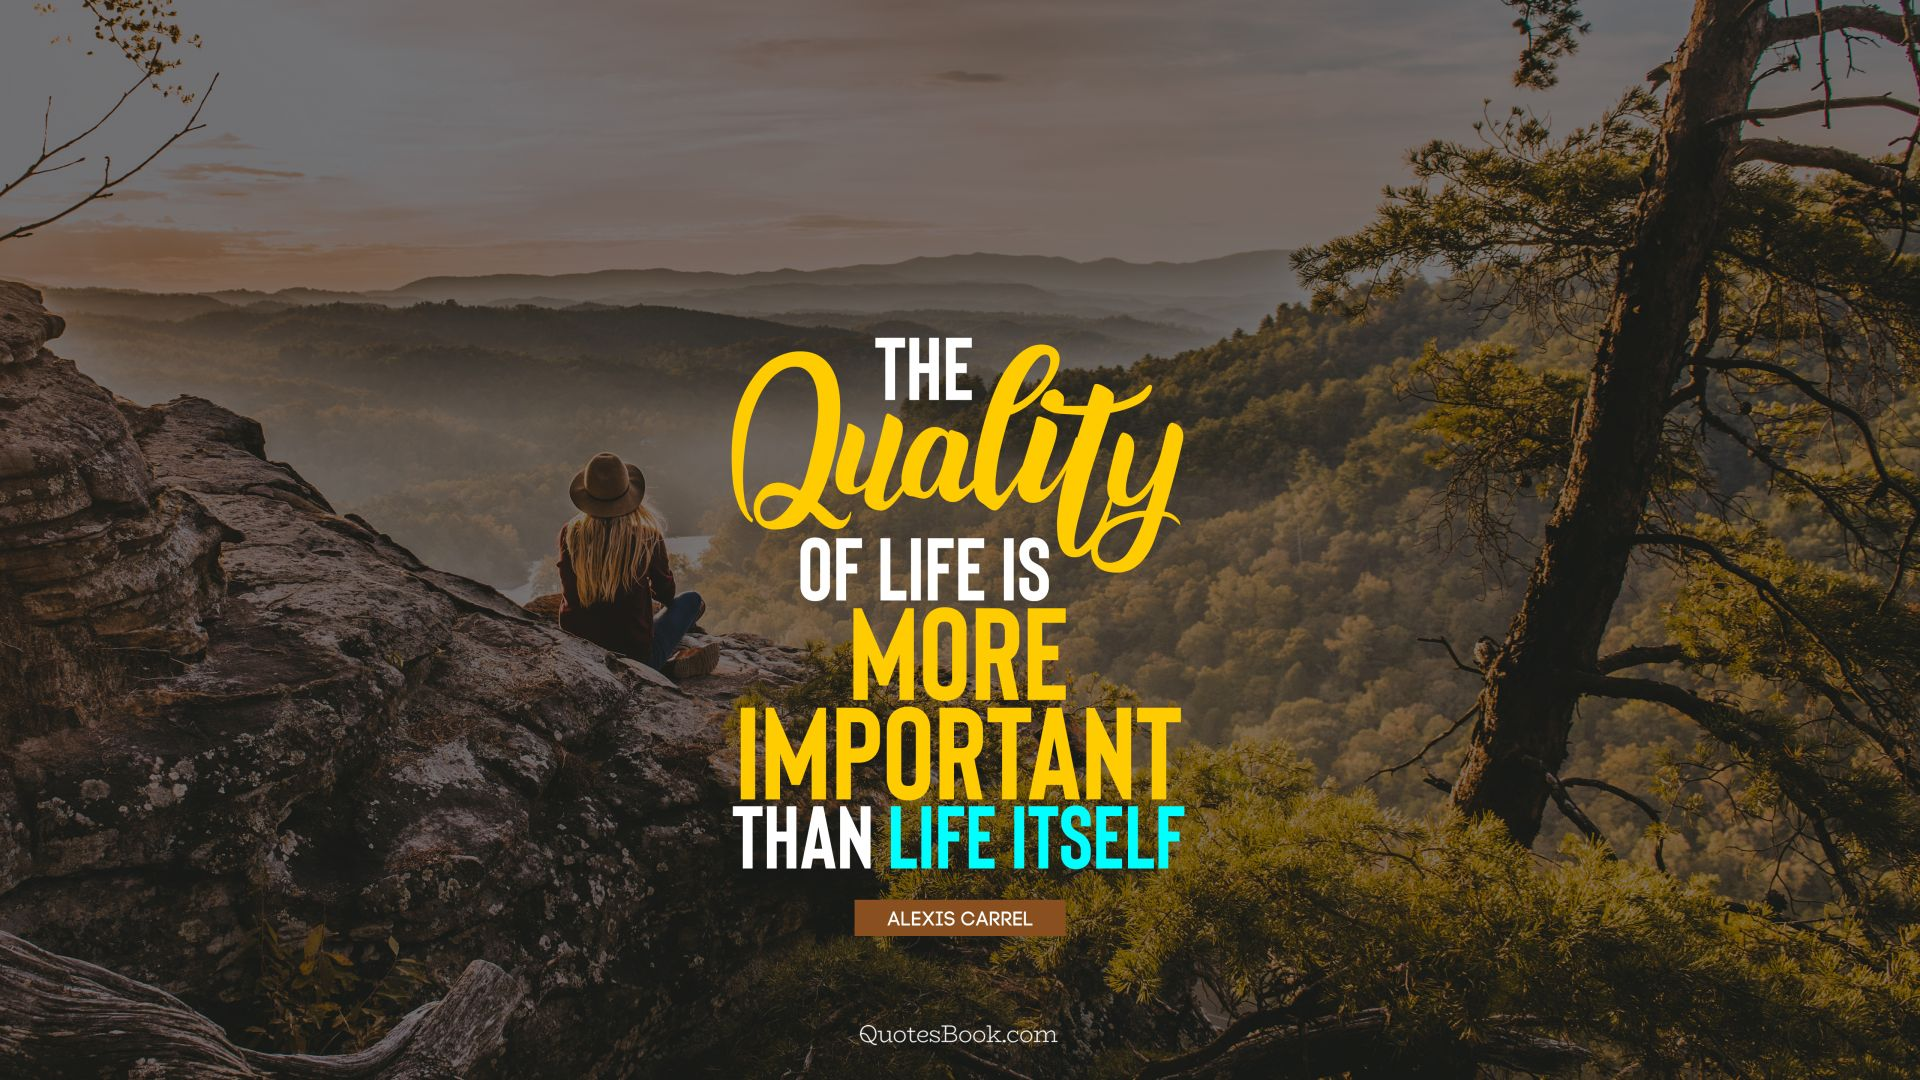 The quality of life is more important than life itself. - Quote by Alexis Carrel